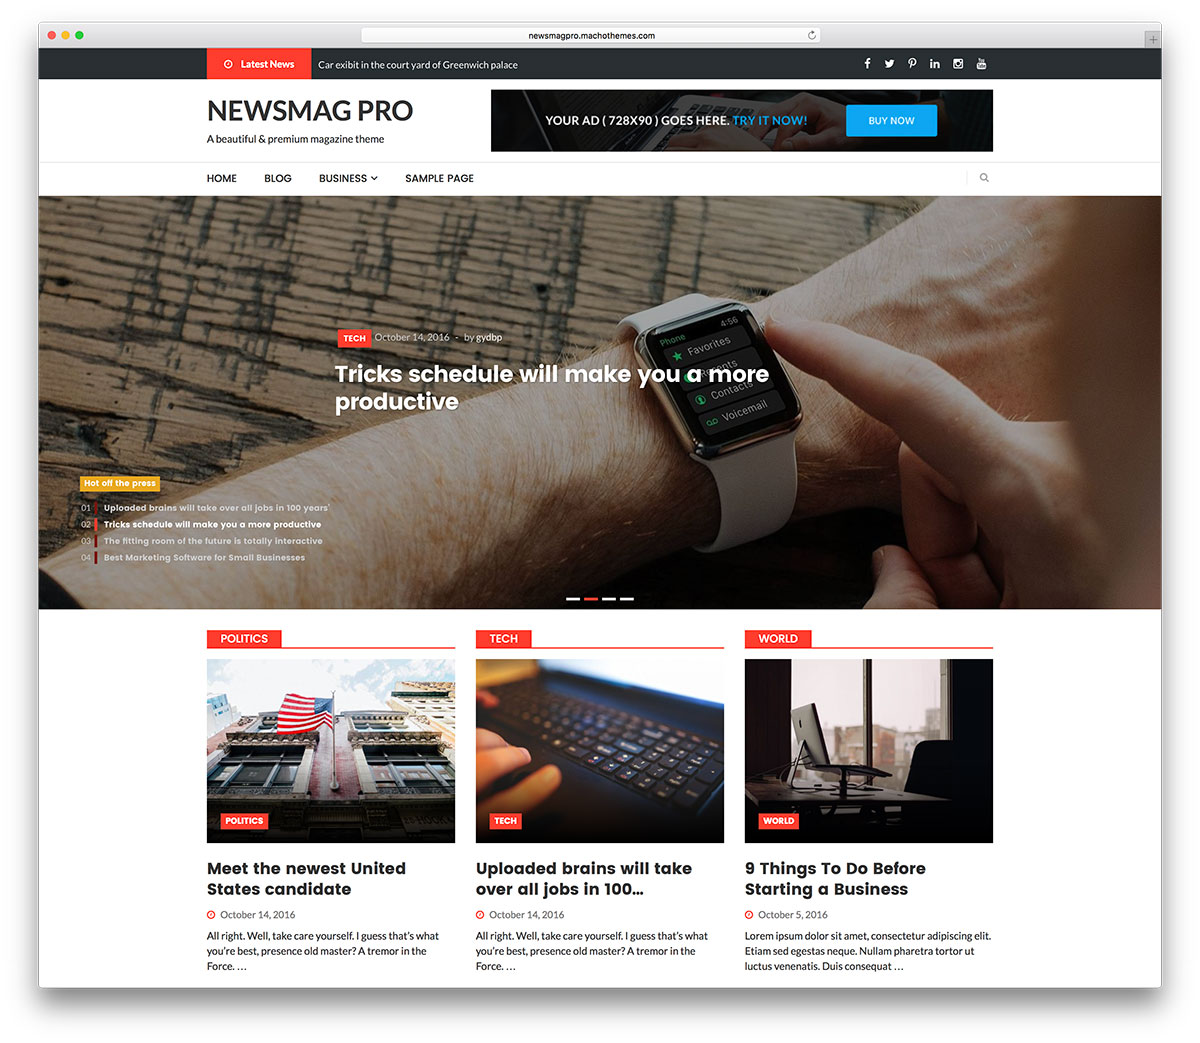 newsmag-pro-tech-news-website-template